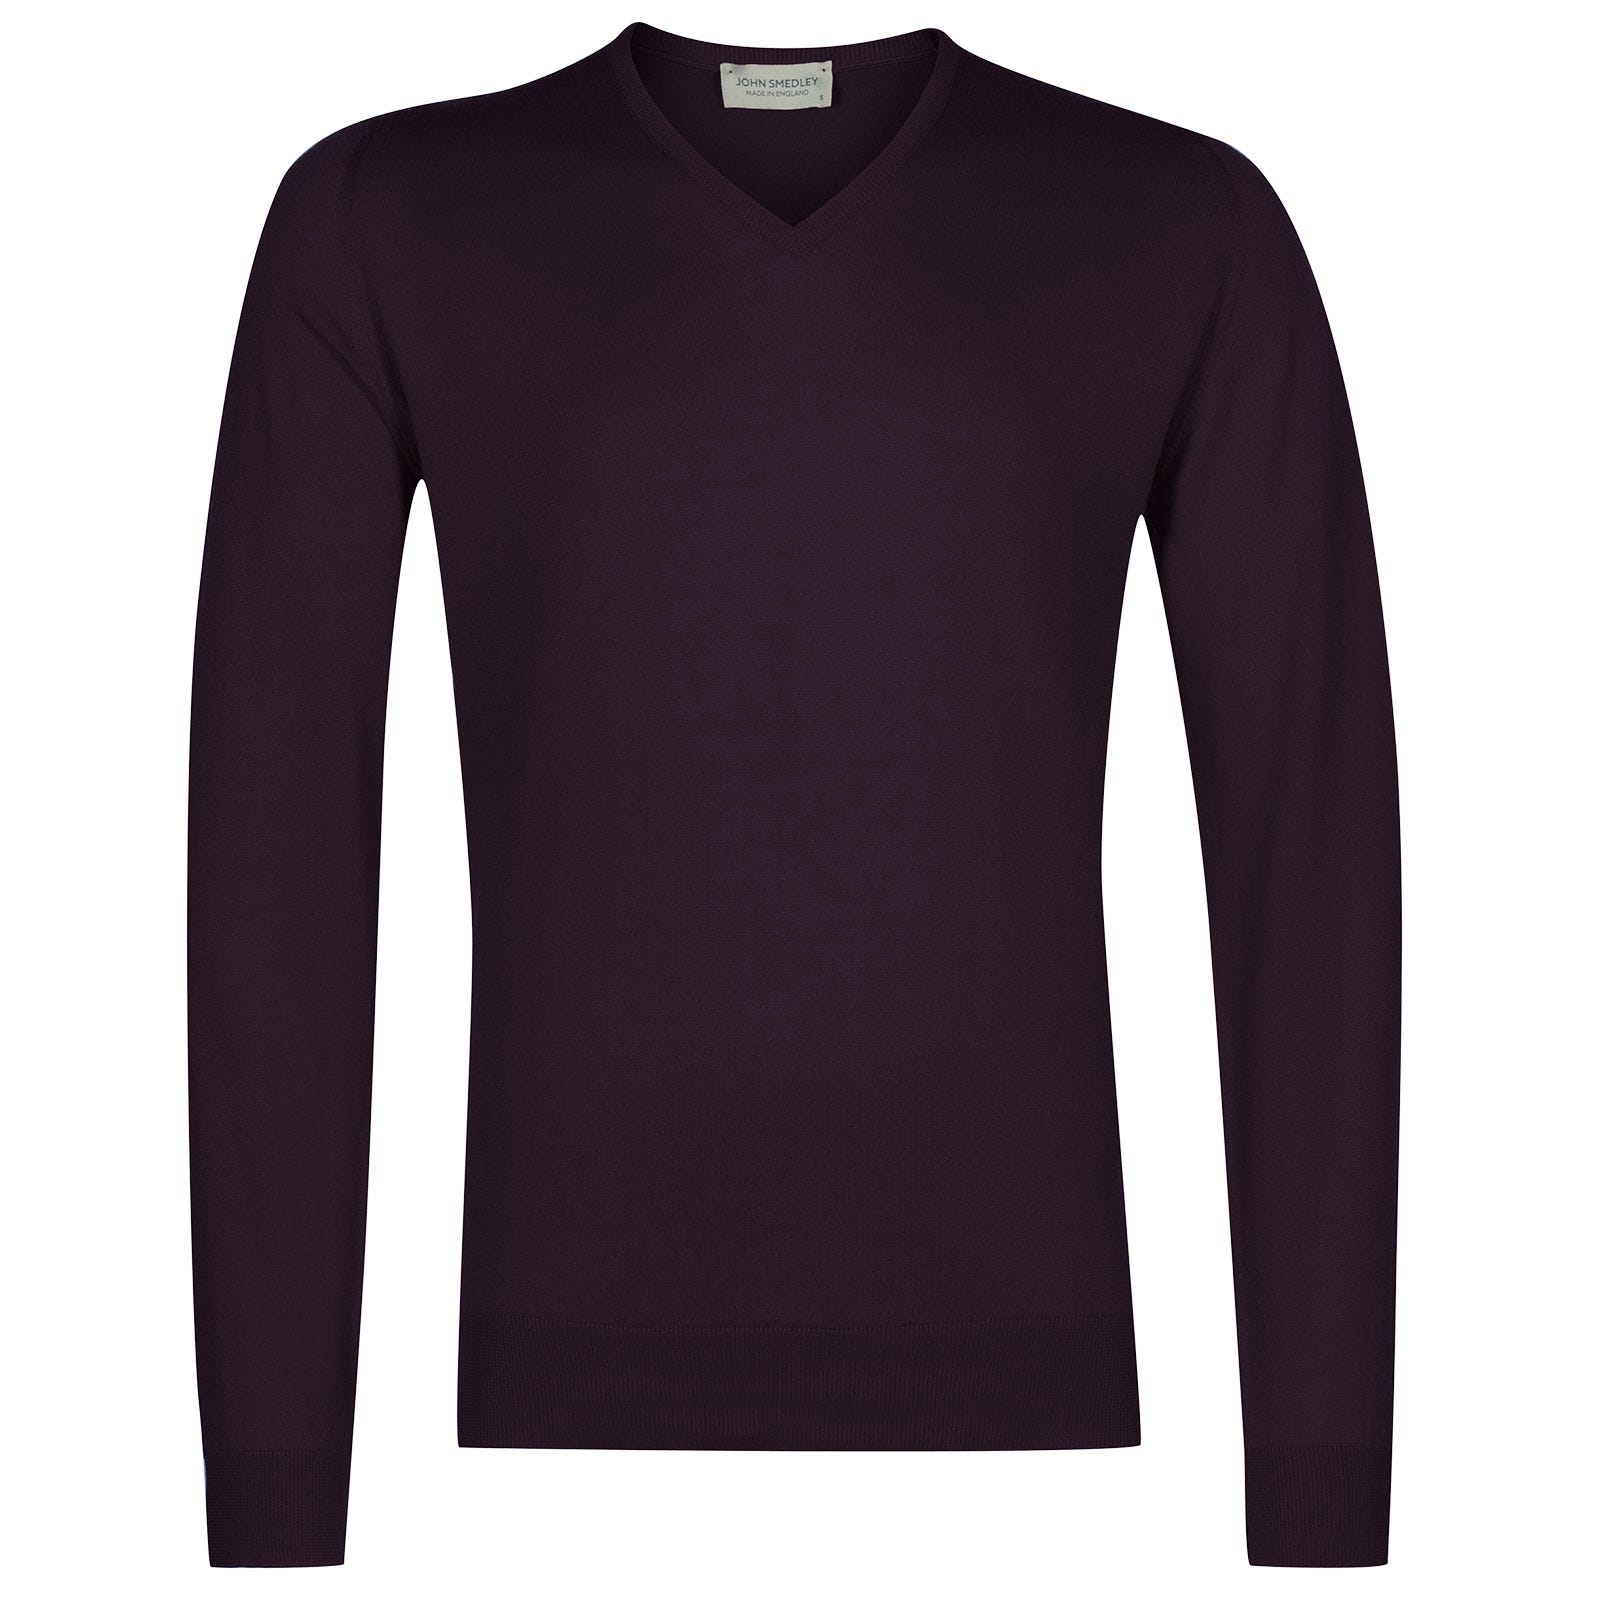 John Smedley Woburn Sea Island Cotton Pullover in Mystic Purple-XL